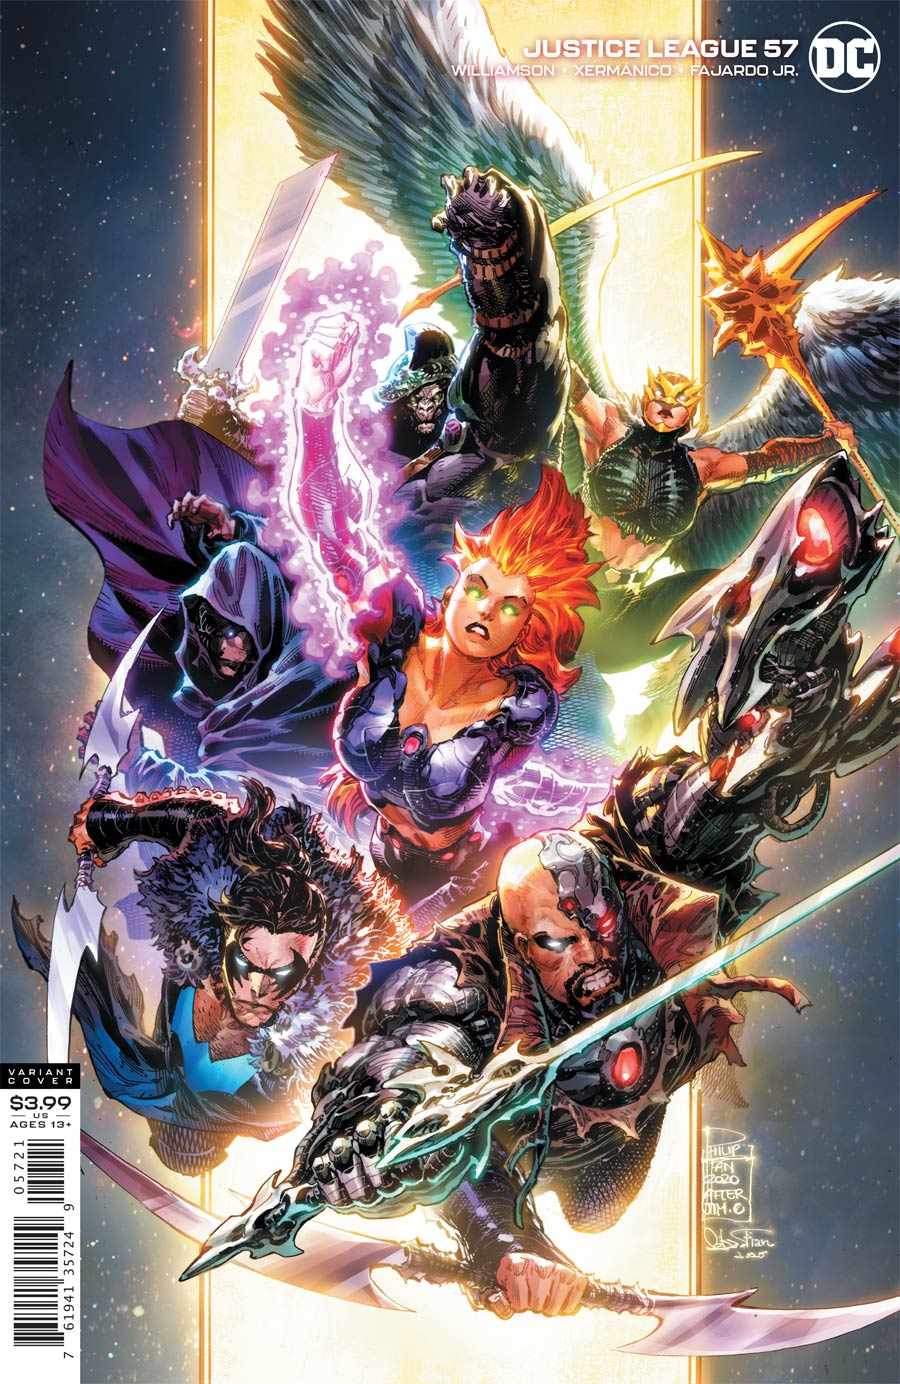 Justice League Vol 4 #57 Cover B Variant Philip Tan Cover (Dark Nights Death Metal Tie-In)